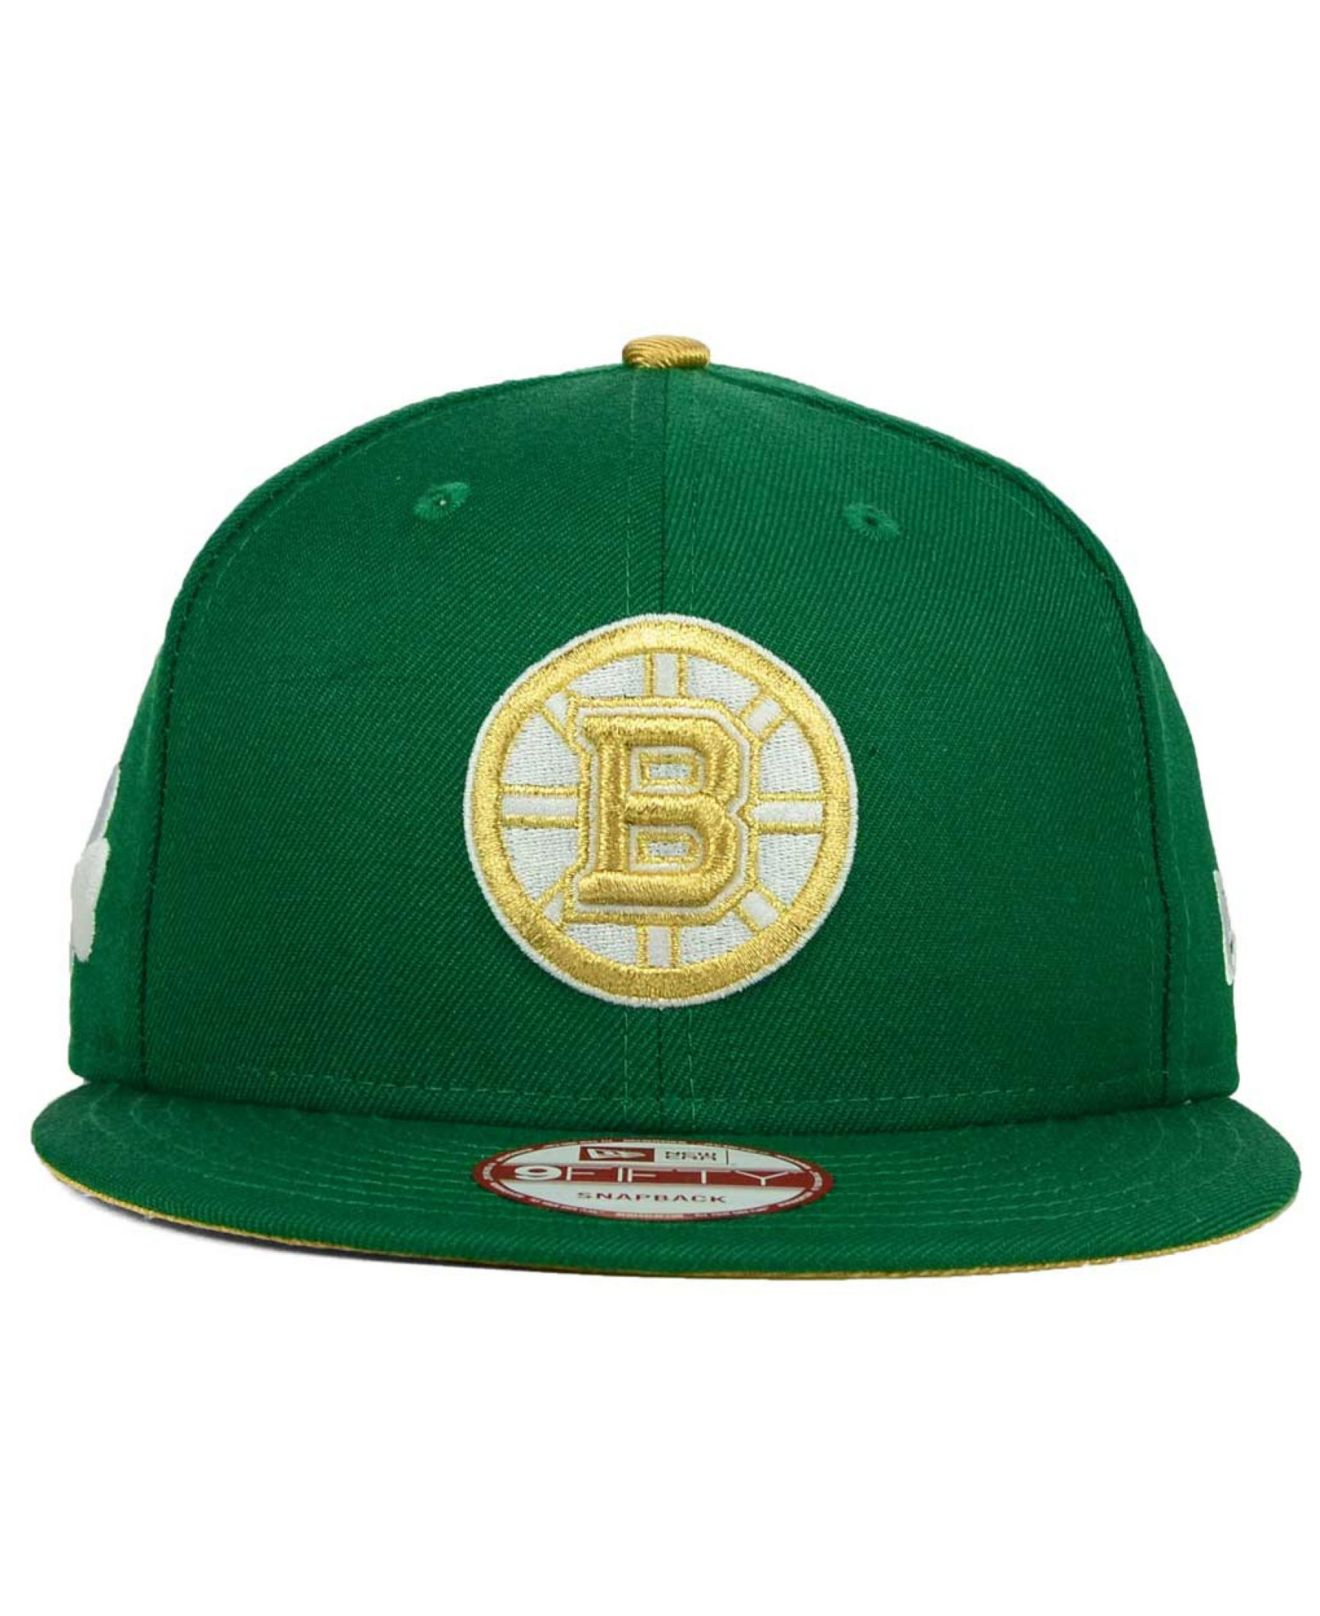 quality design 383a5 d47b3 KTZ Boston Bruins St. Pat 9fifty Snapback Cap in Green for Men - Lyst